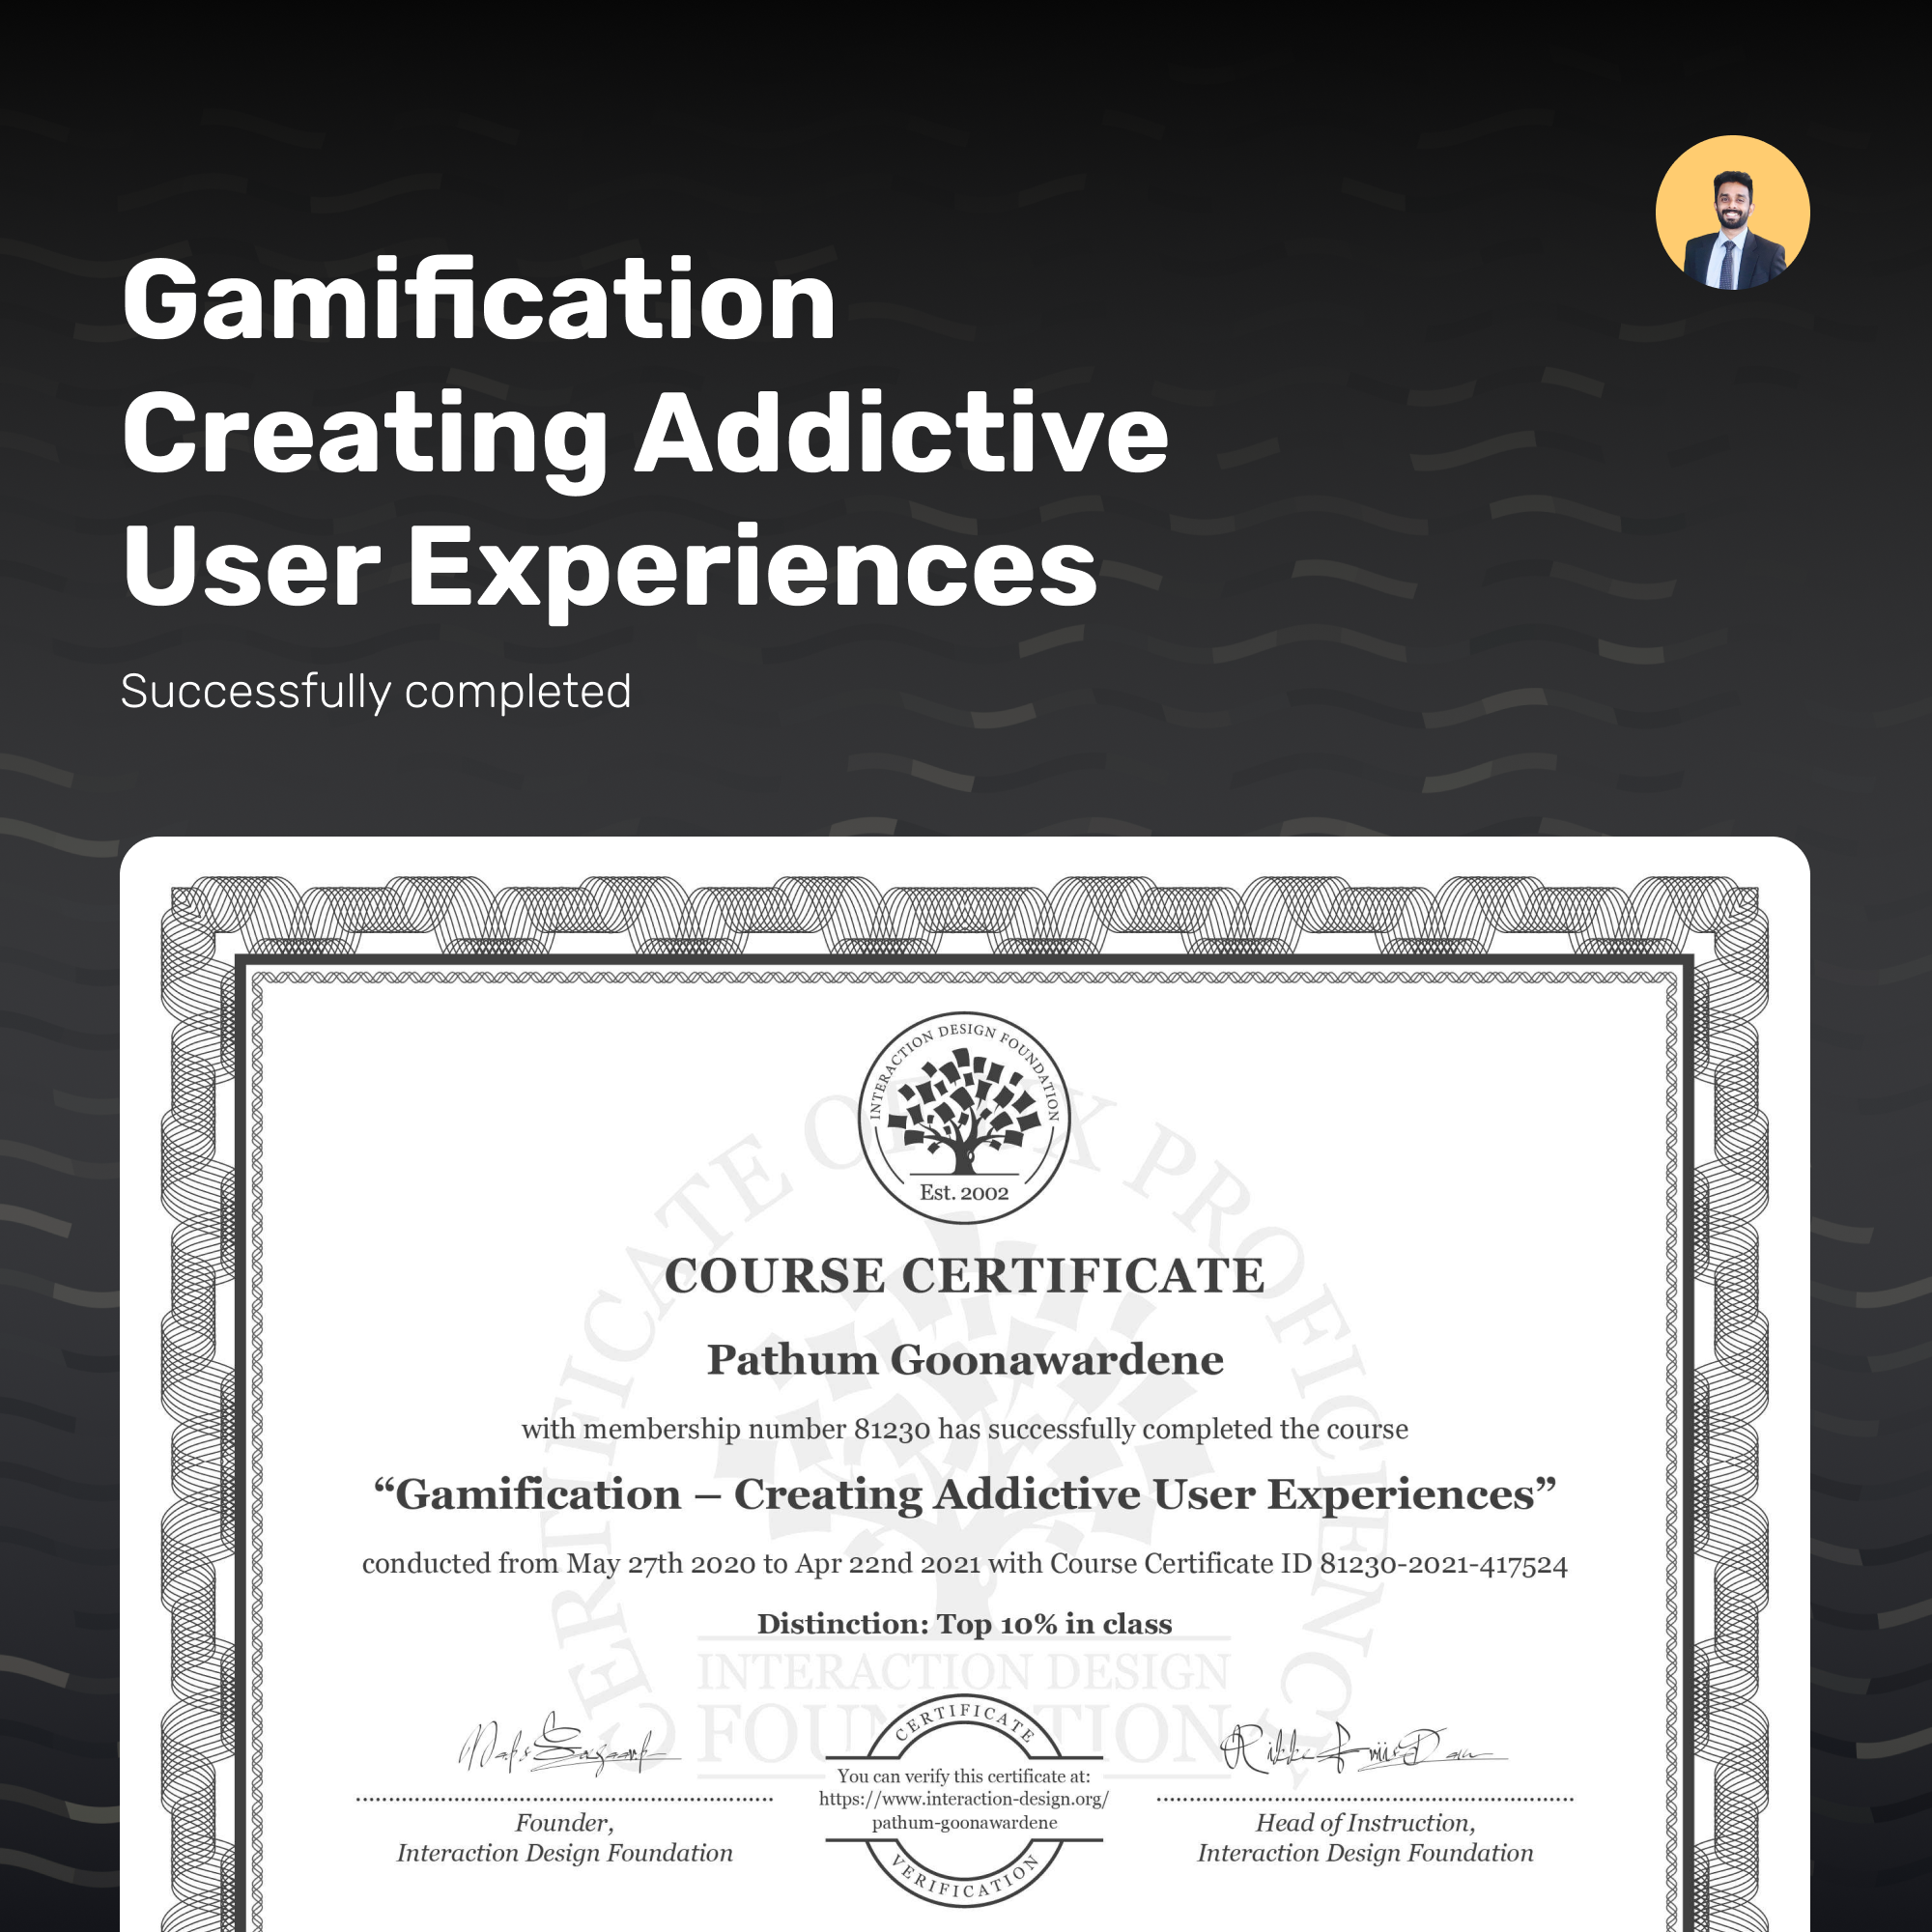 Gamification—Creating Addictive User Experiences